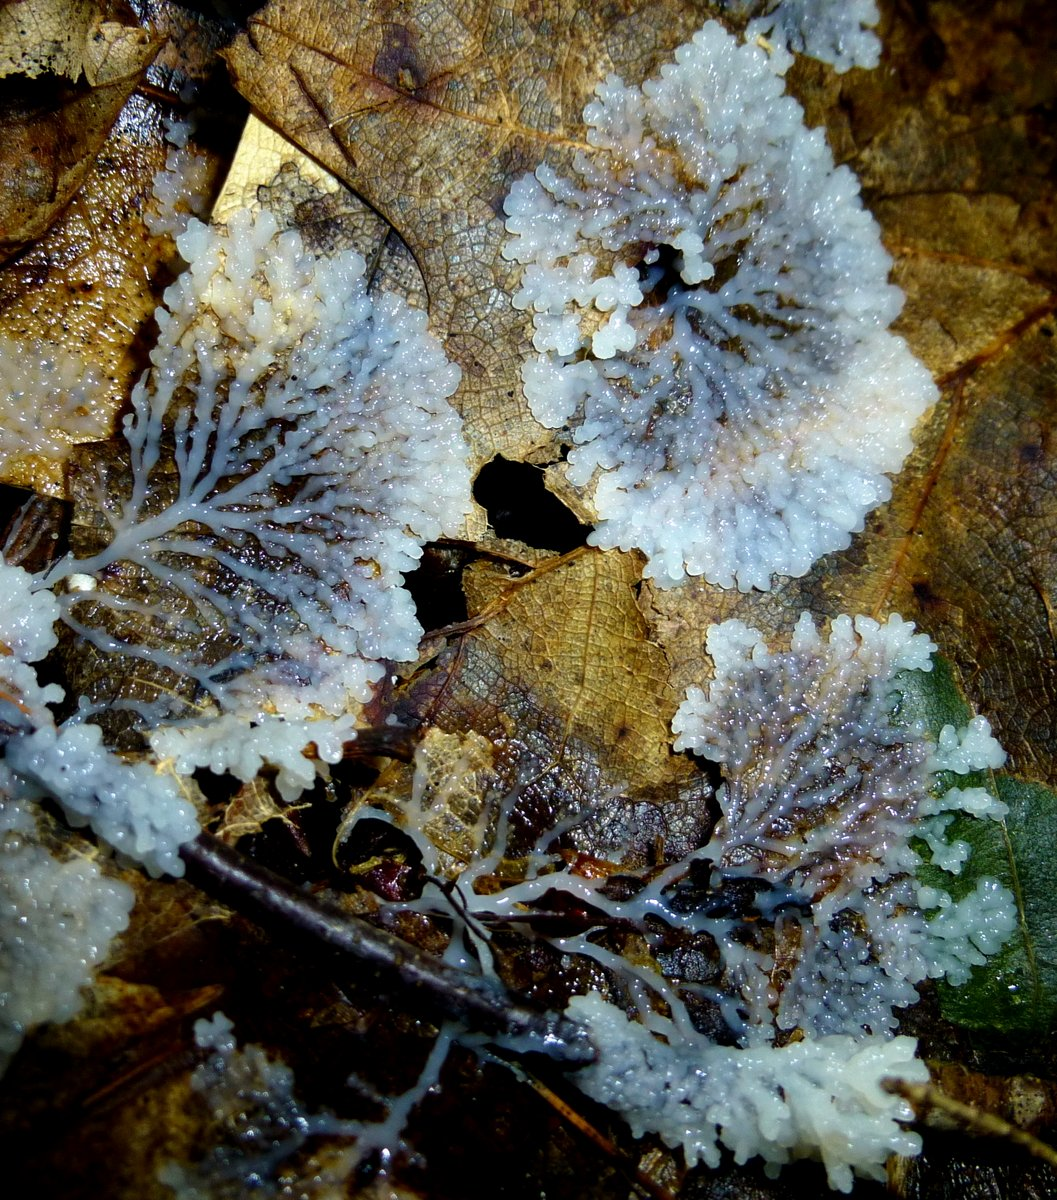 8. Unknown White Slime Mold